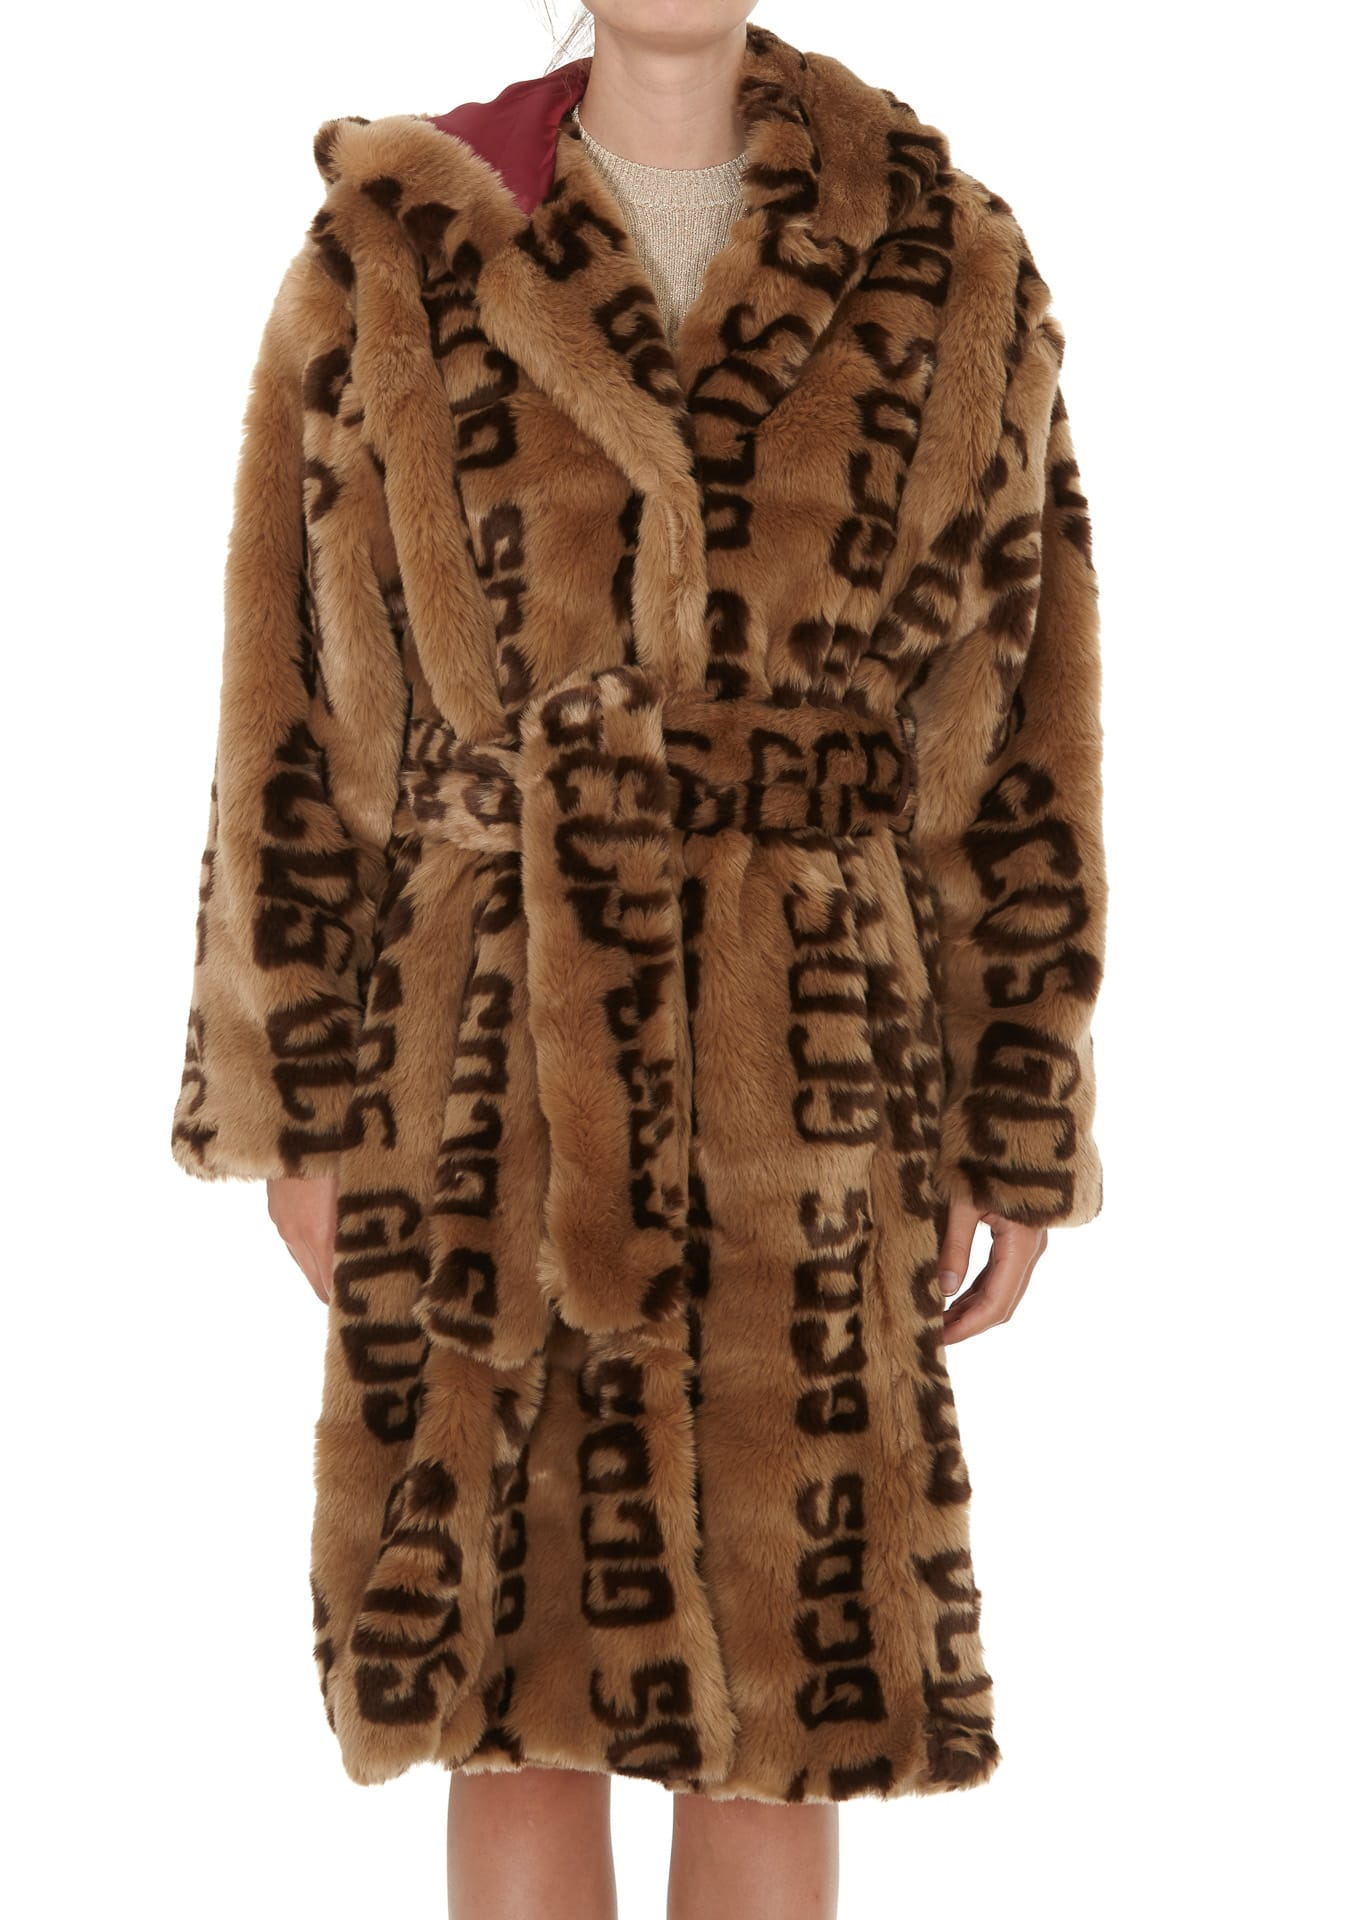 Gcds Monogram Birds Eco Fur Coat